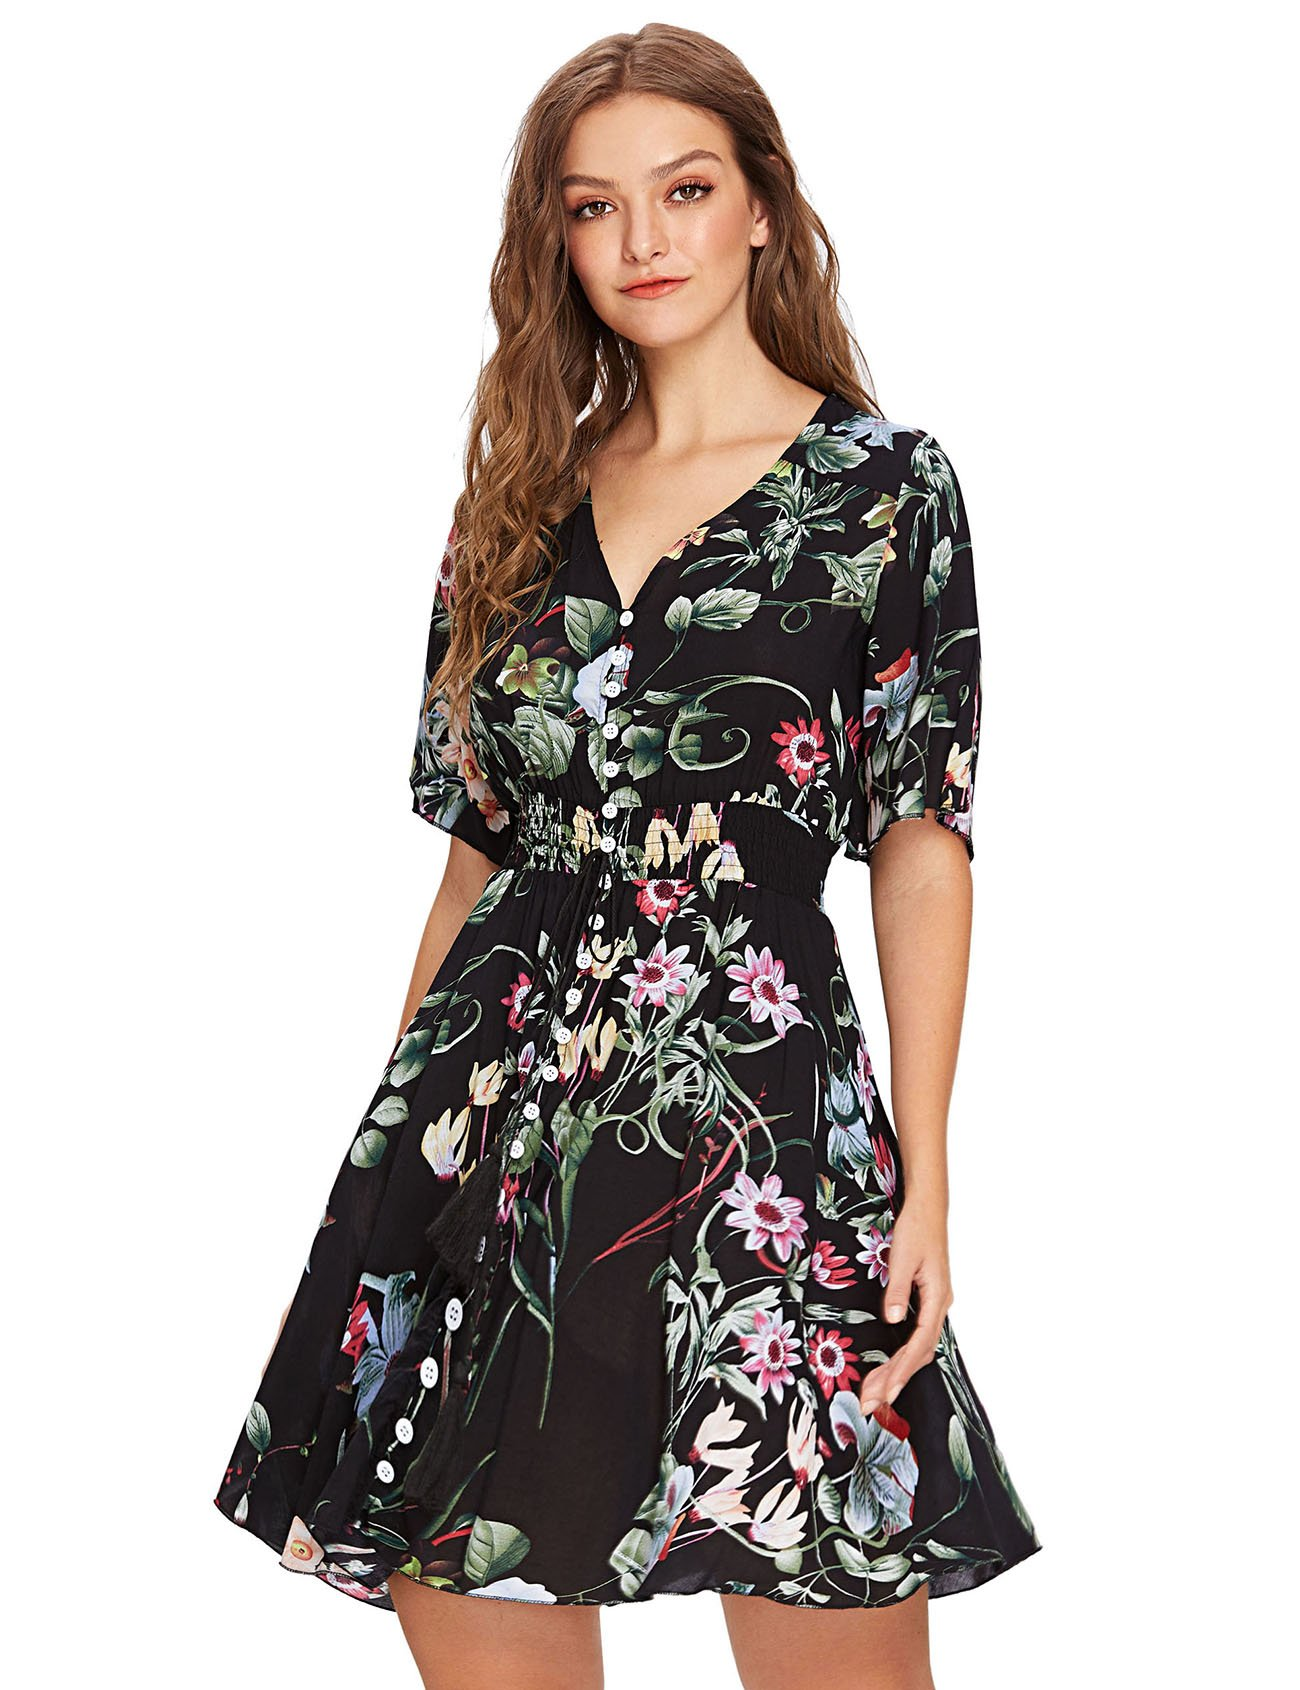 337c1ec1b8 Galleon - Milumia Women's Boho Button Up Split Floral Print Flowy Party  Dress Multicolor-Black-2 X-Large